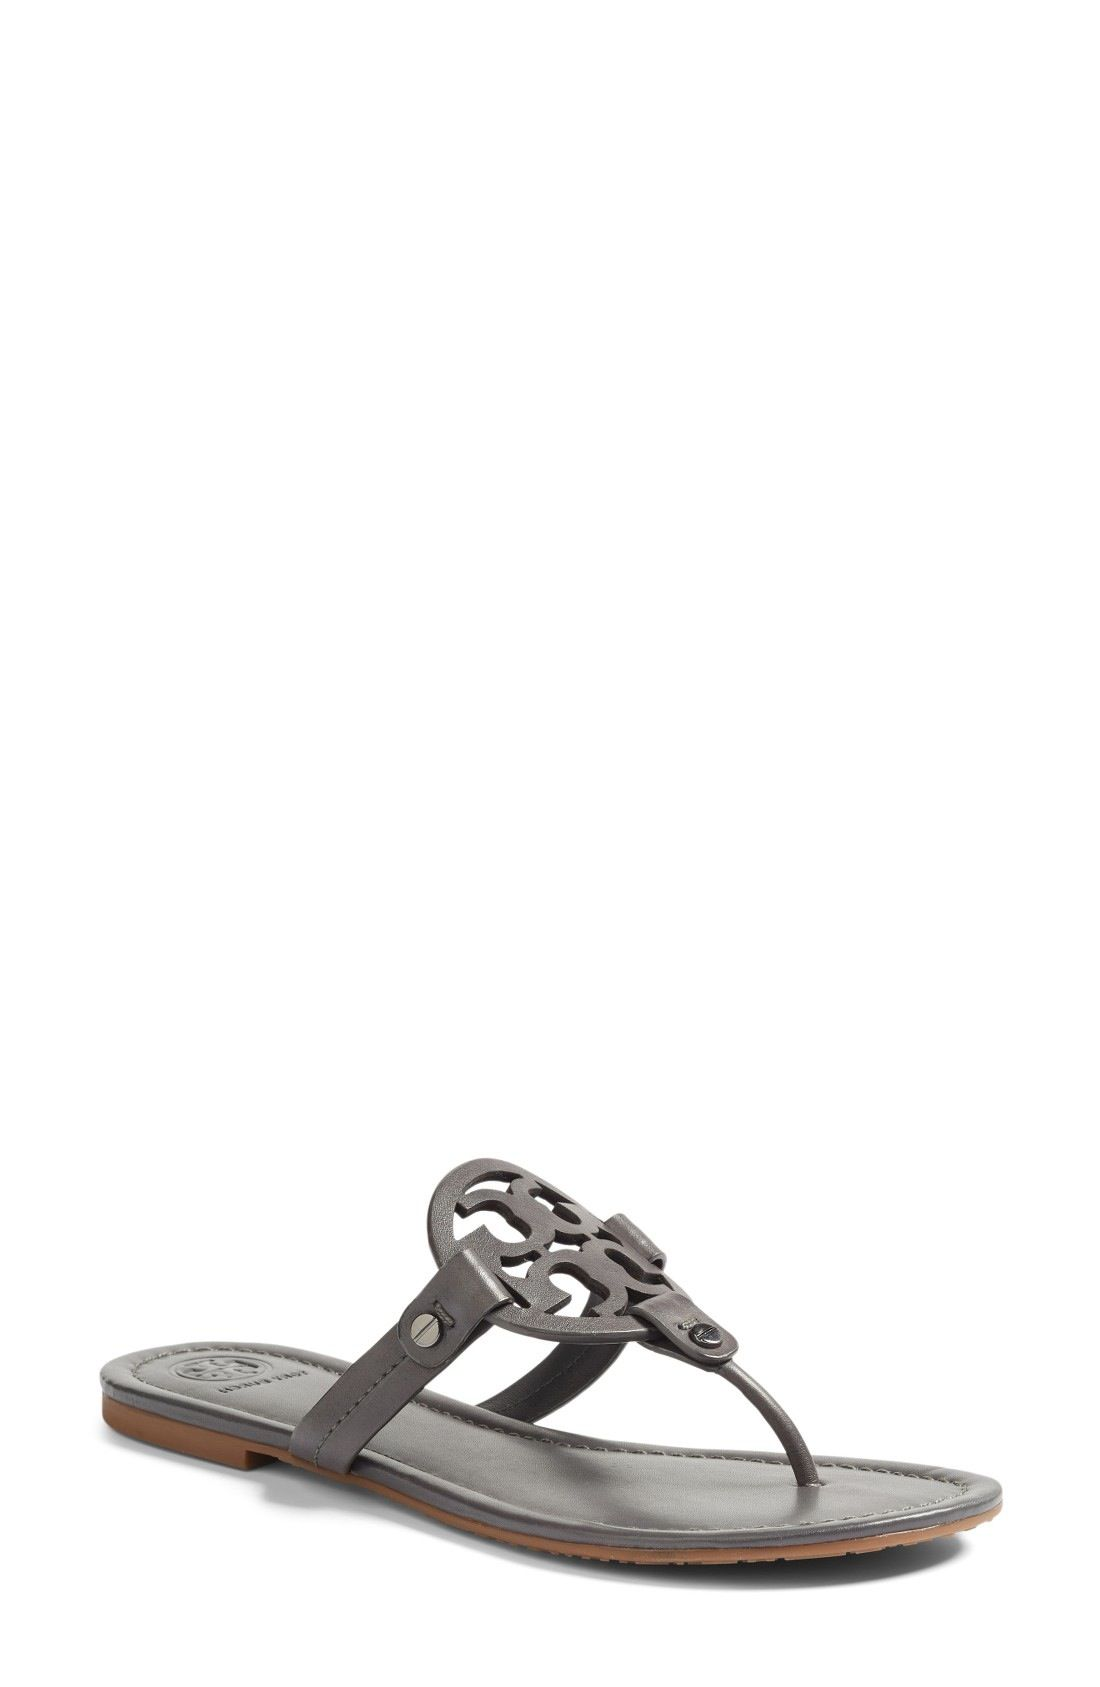 191abb0482b Tory Burch  Miller  Flip Flop (Women) available at  Nordstrom